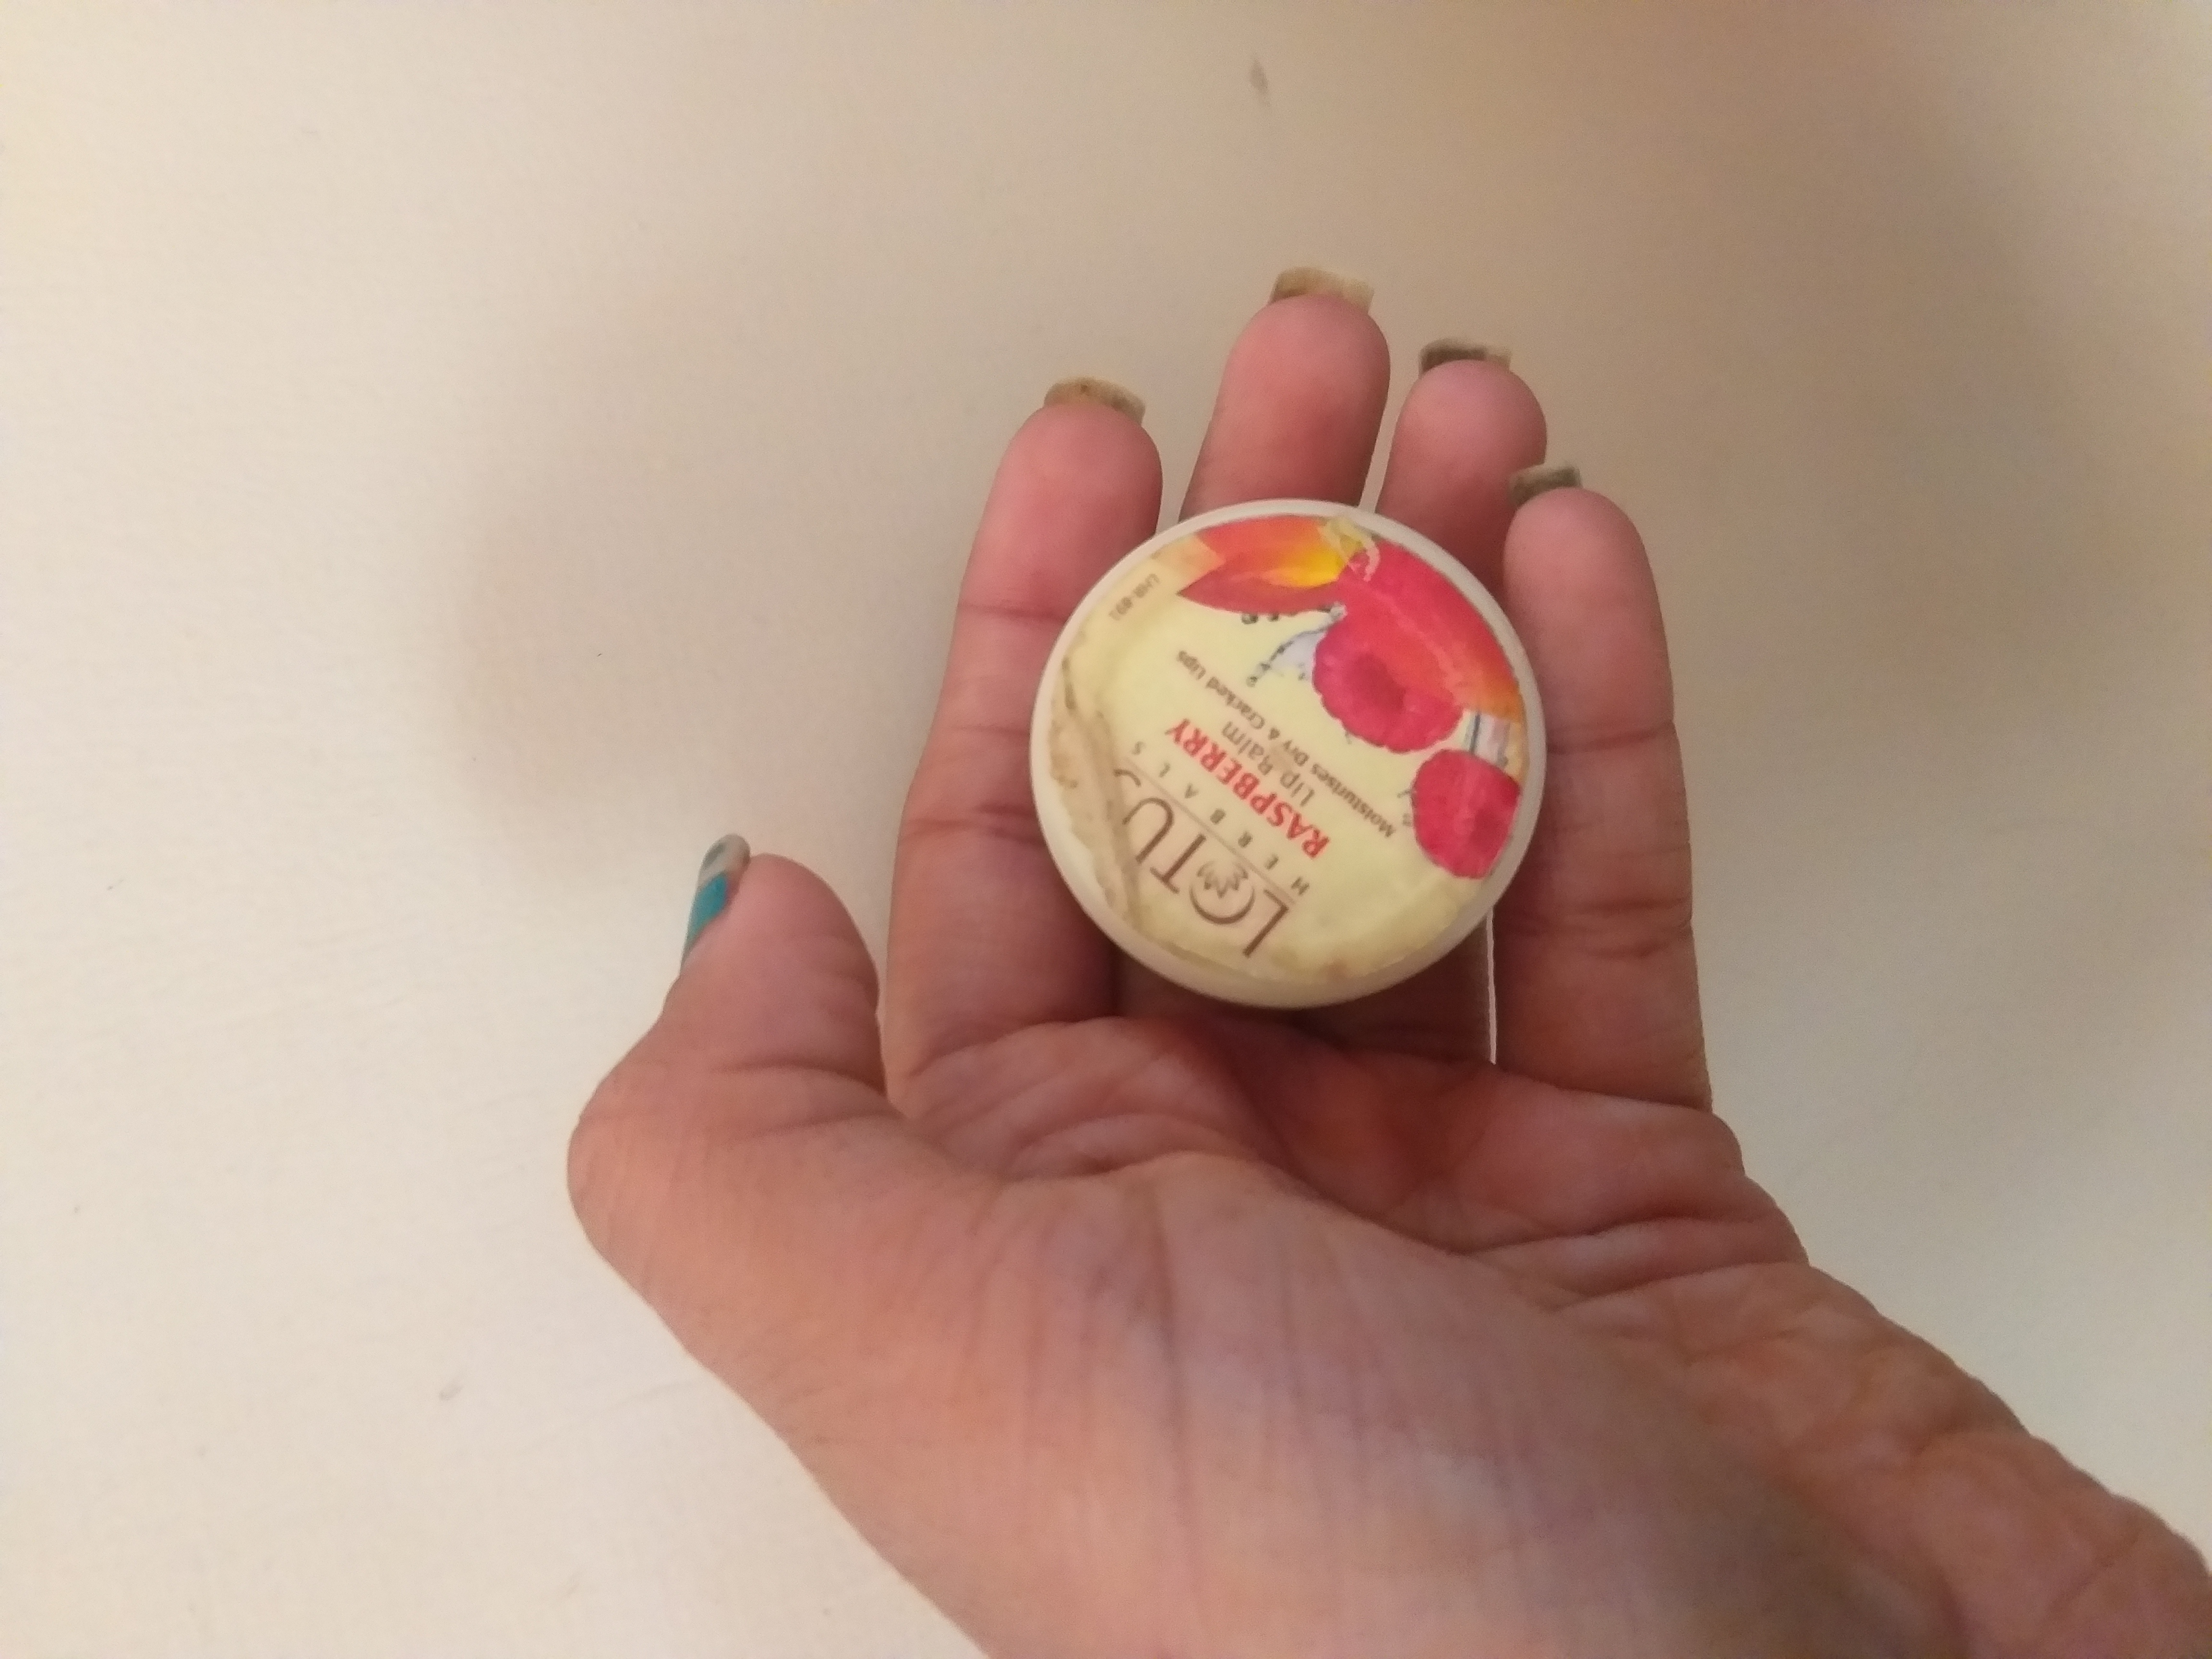 Lotus Herbals Strawberry Lip Balm-Nourishes and repaires chapped lips-By hinap